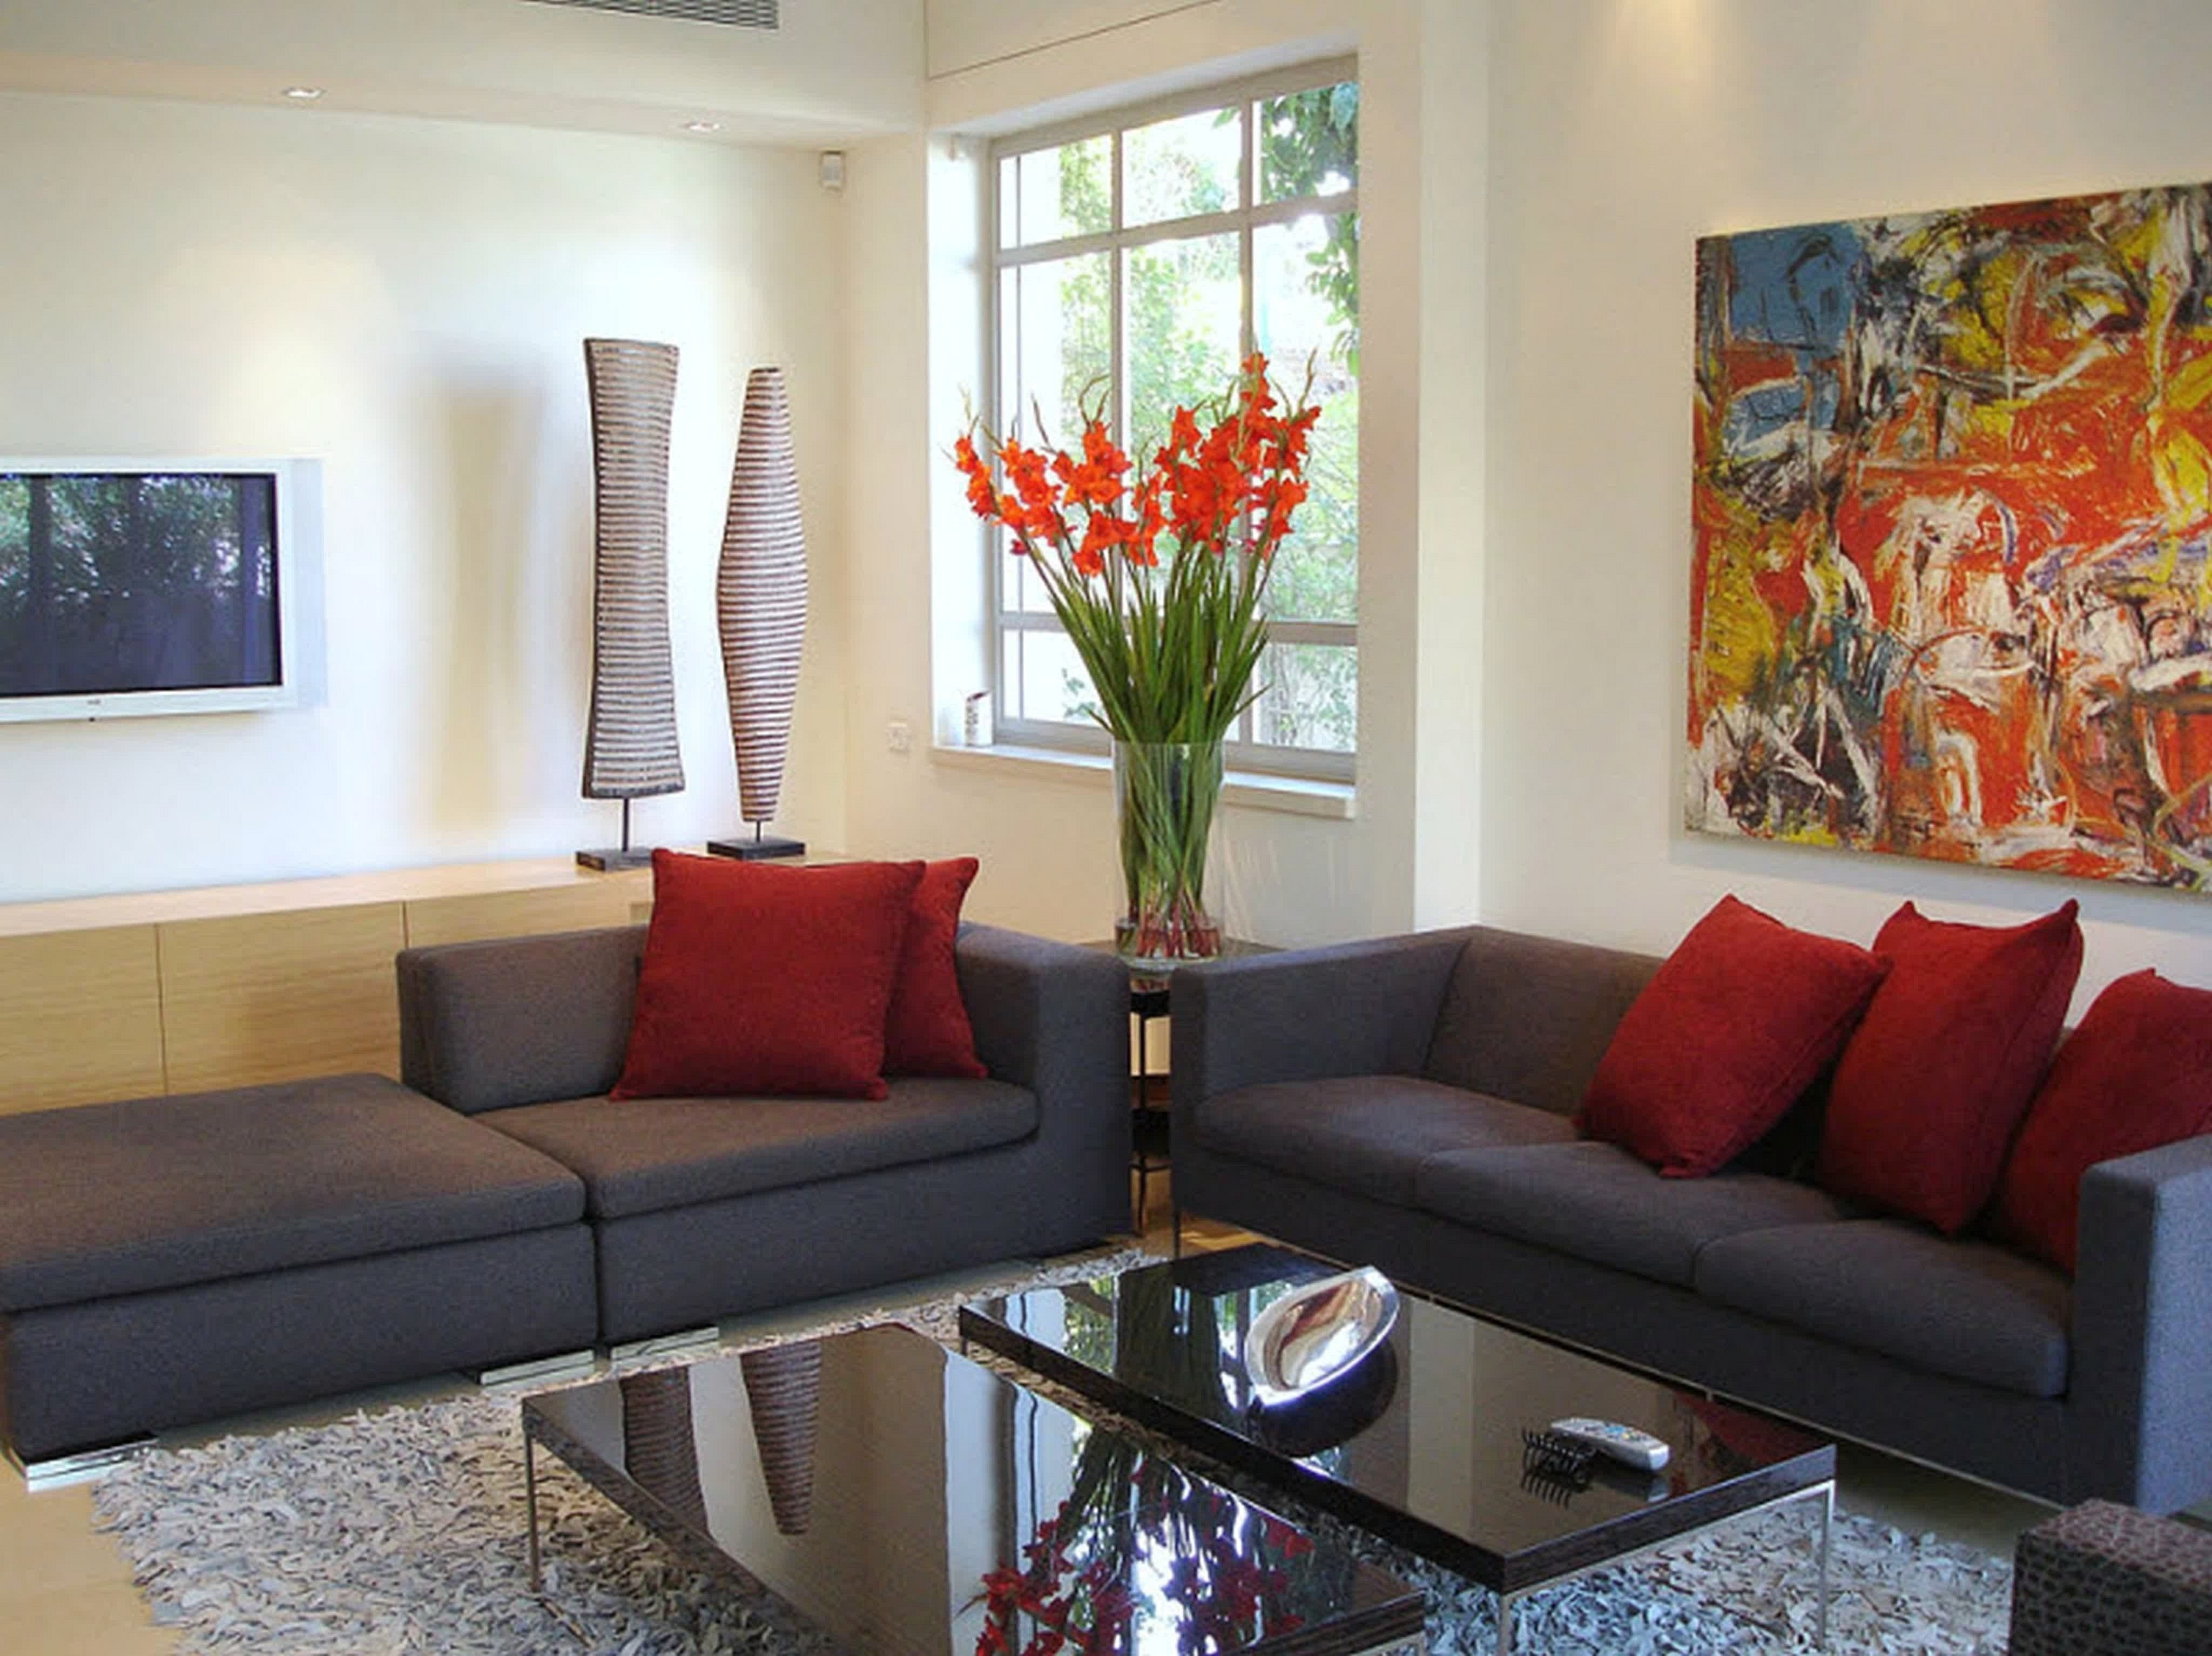 10 Attractive Living Room Decor Ideas On A Budget creative living room decorating ideas for apartments cheap home 2021